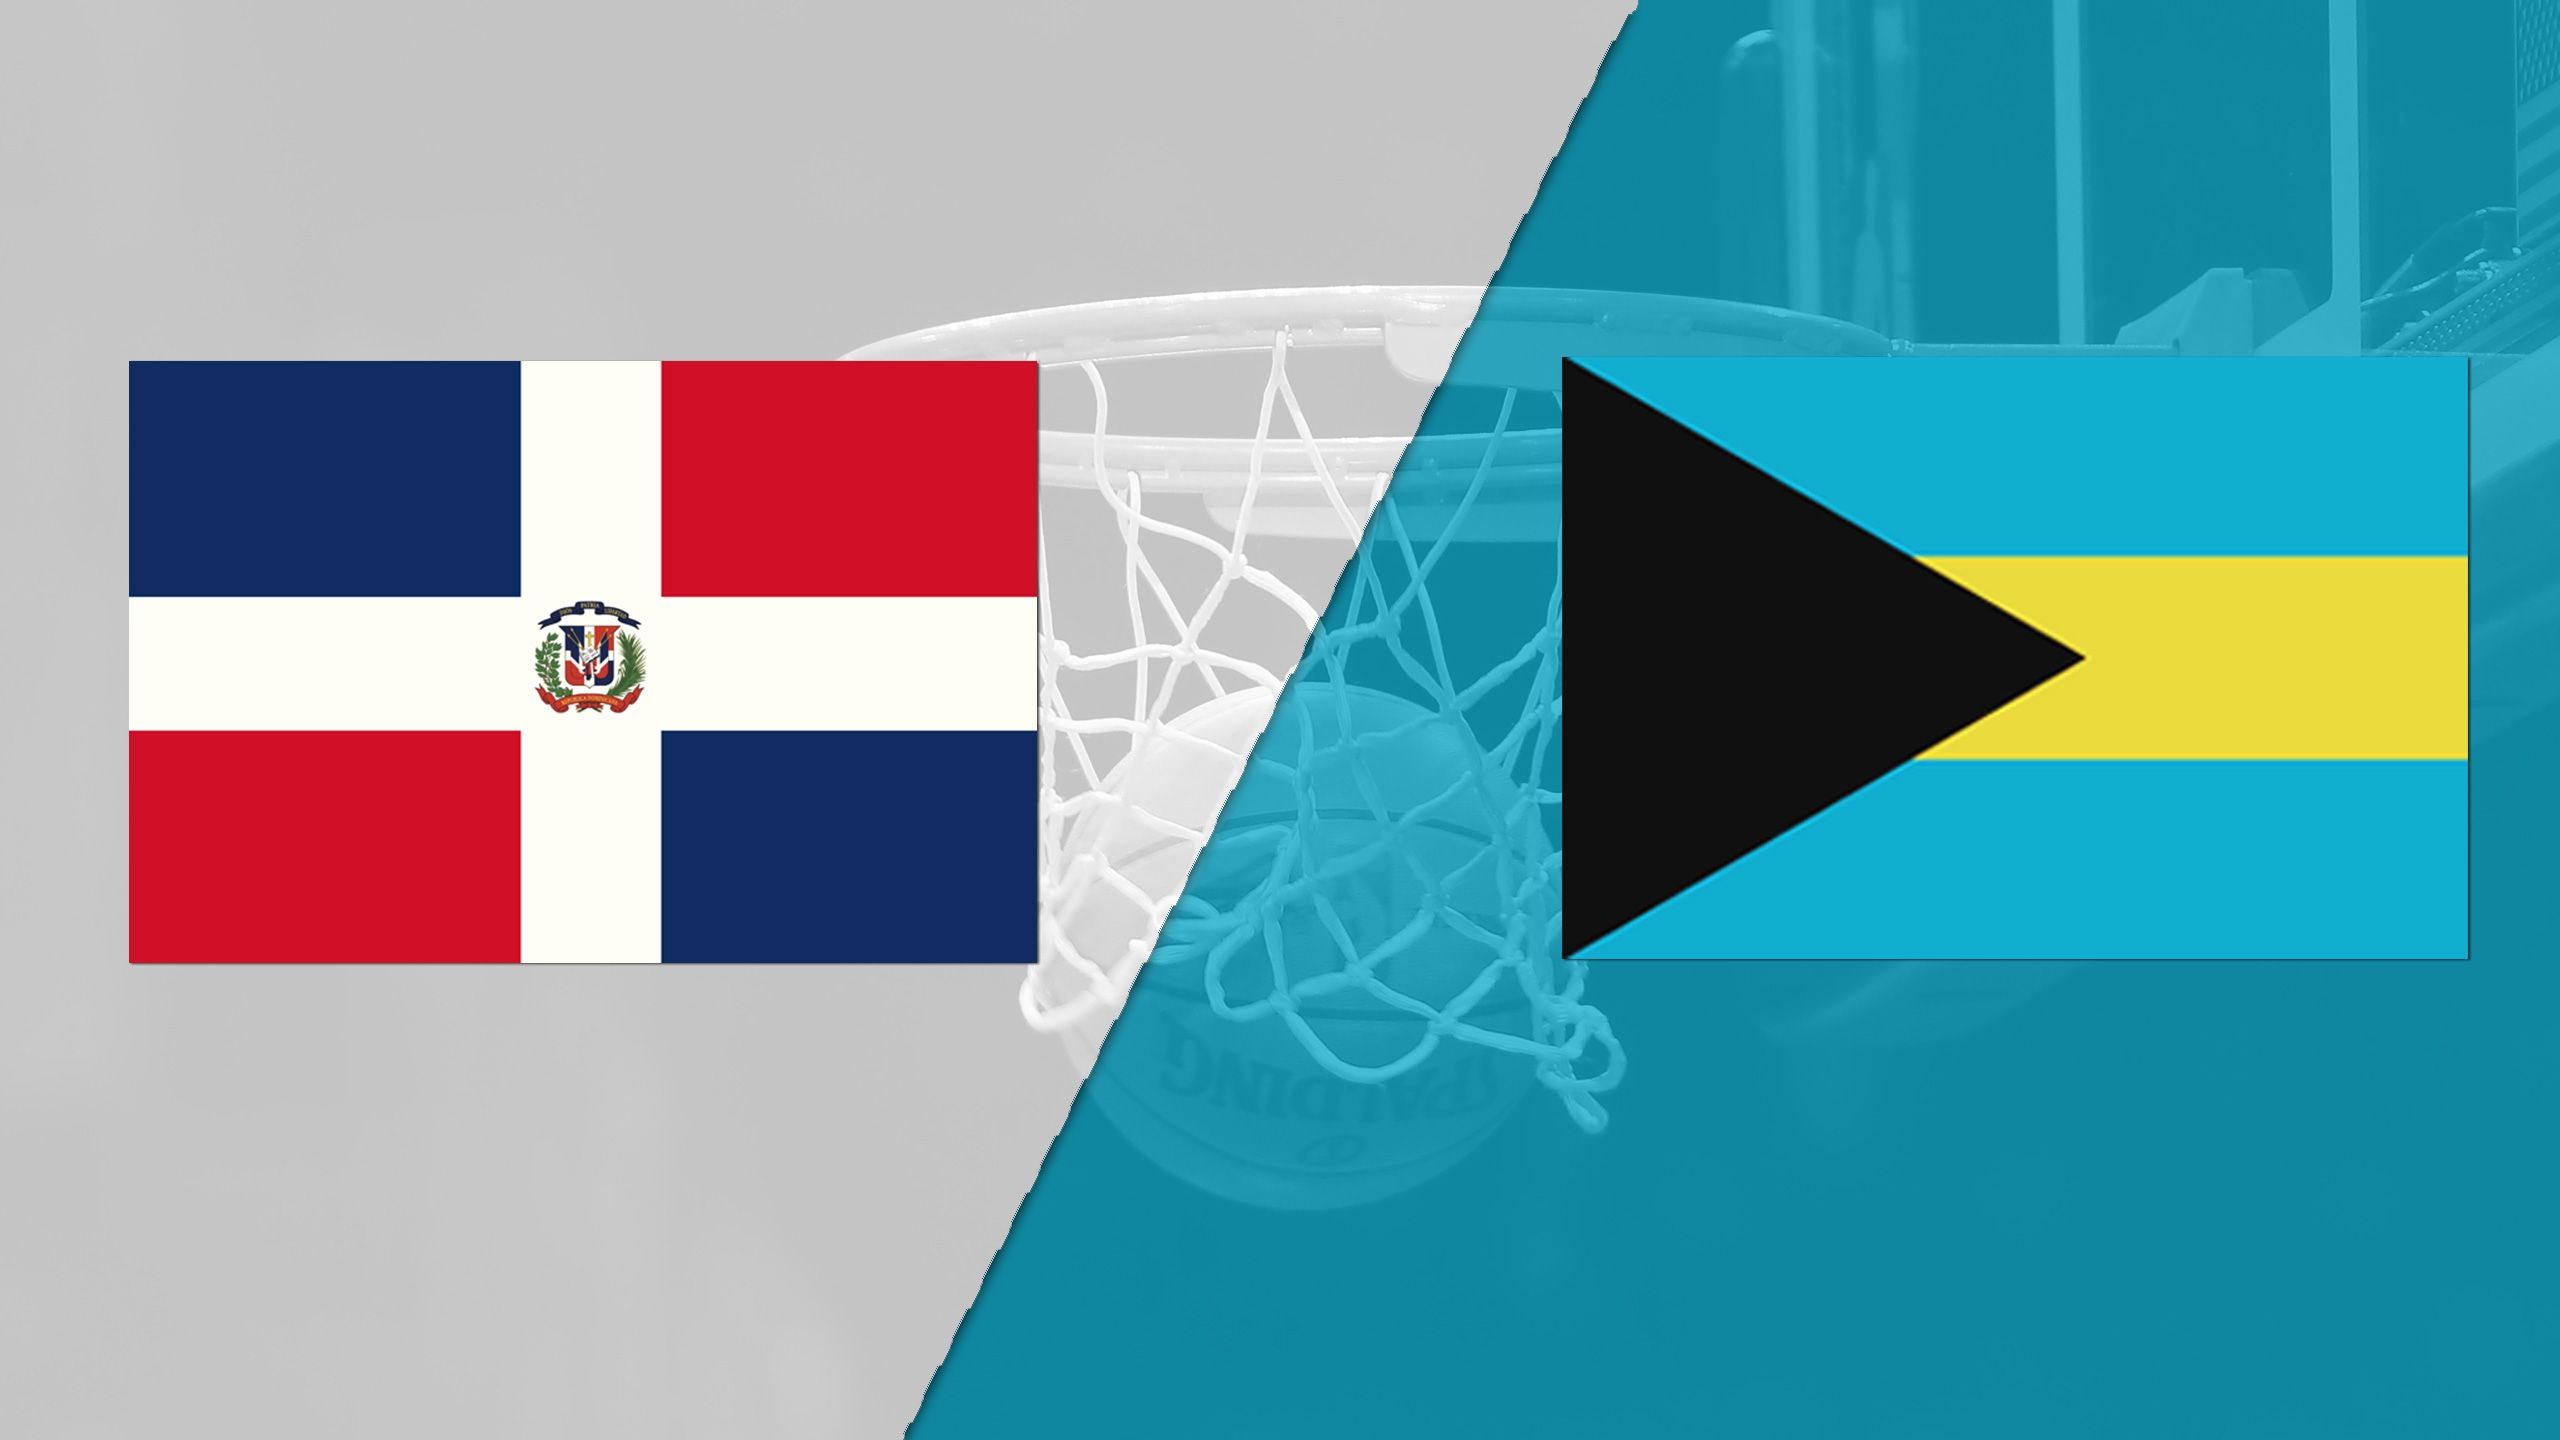 Dominican Republic vs. Bahamas (FIBA World Cup 2019 Qualifier)